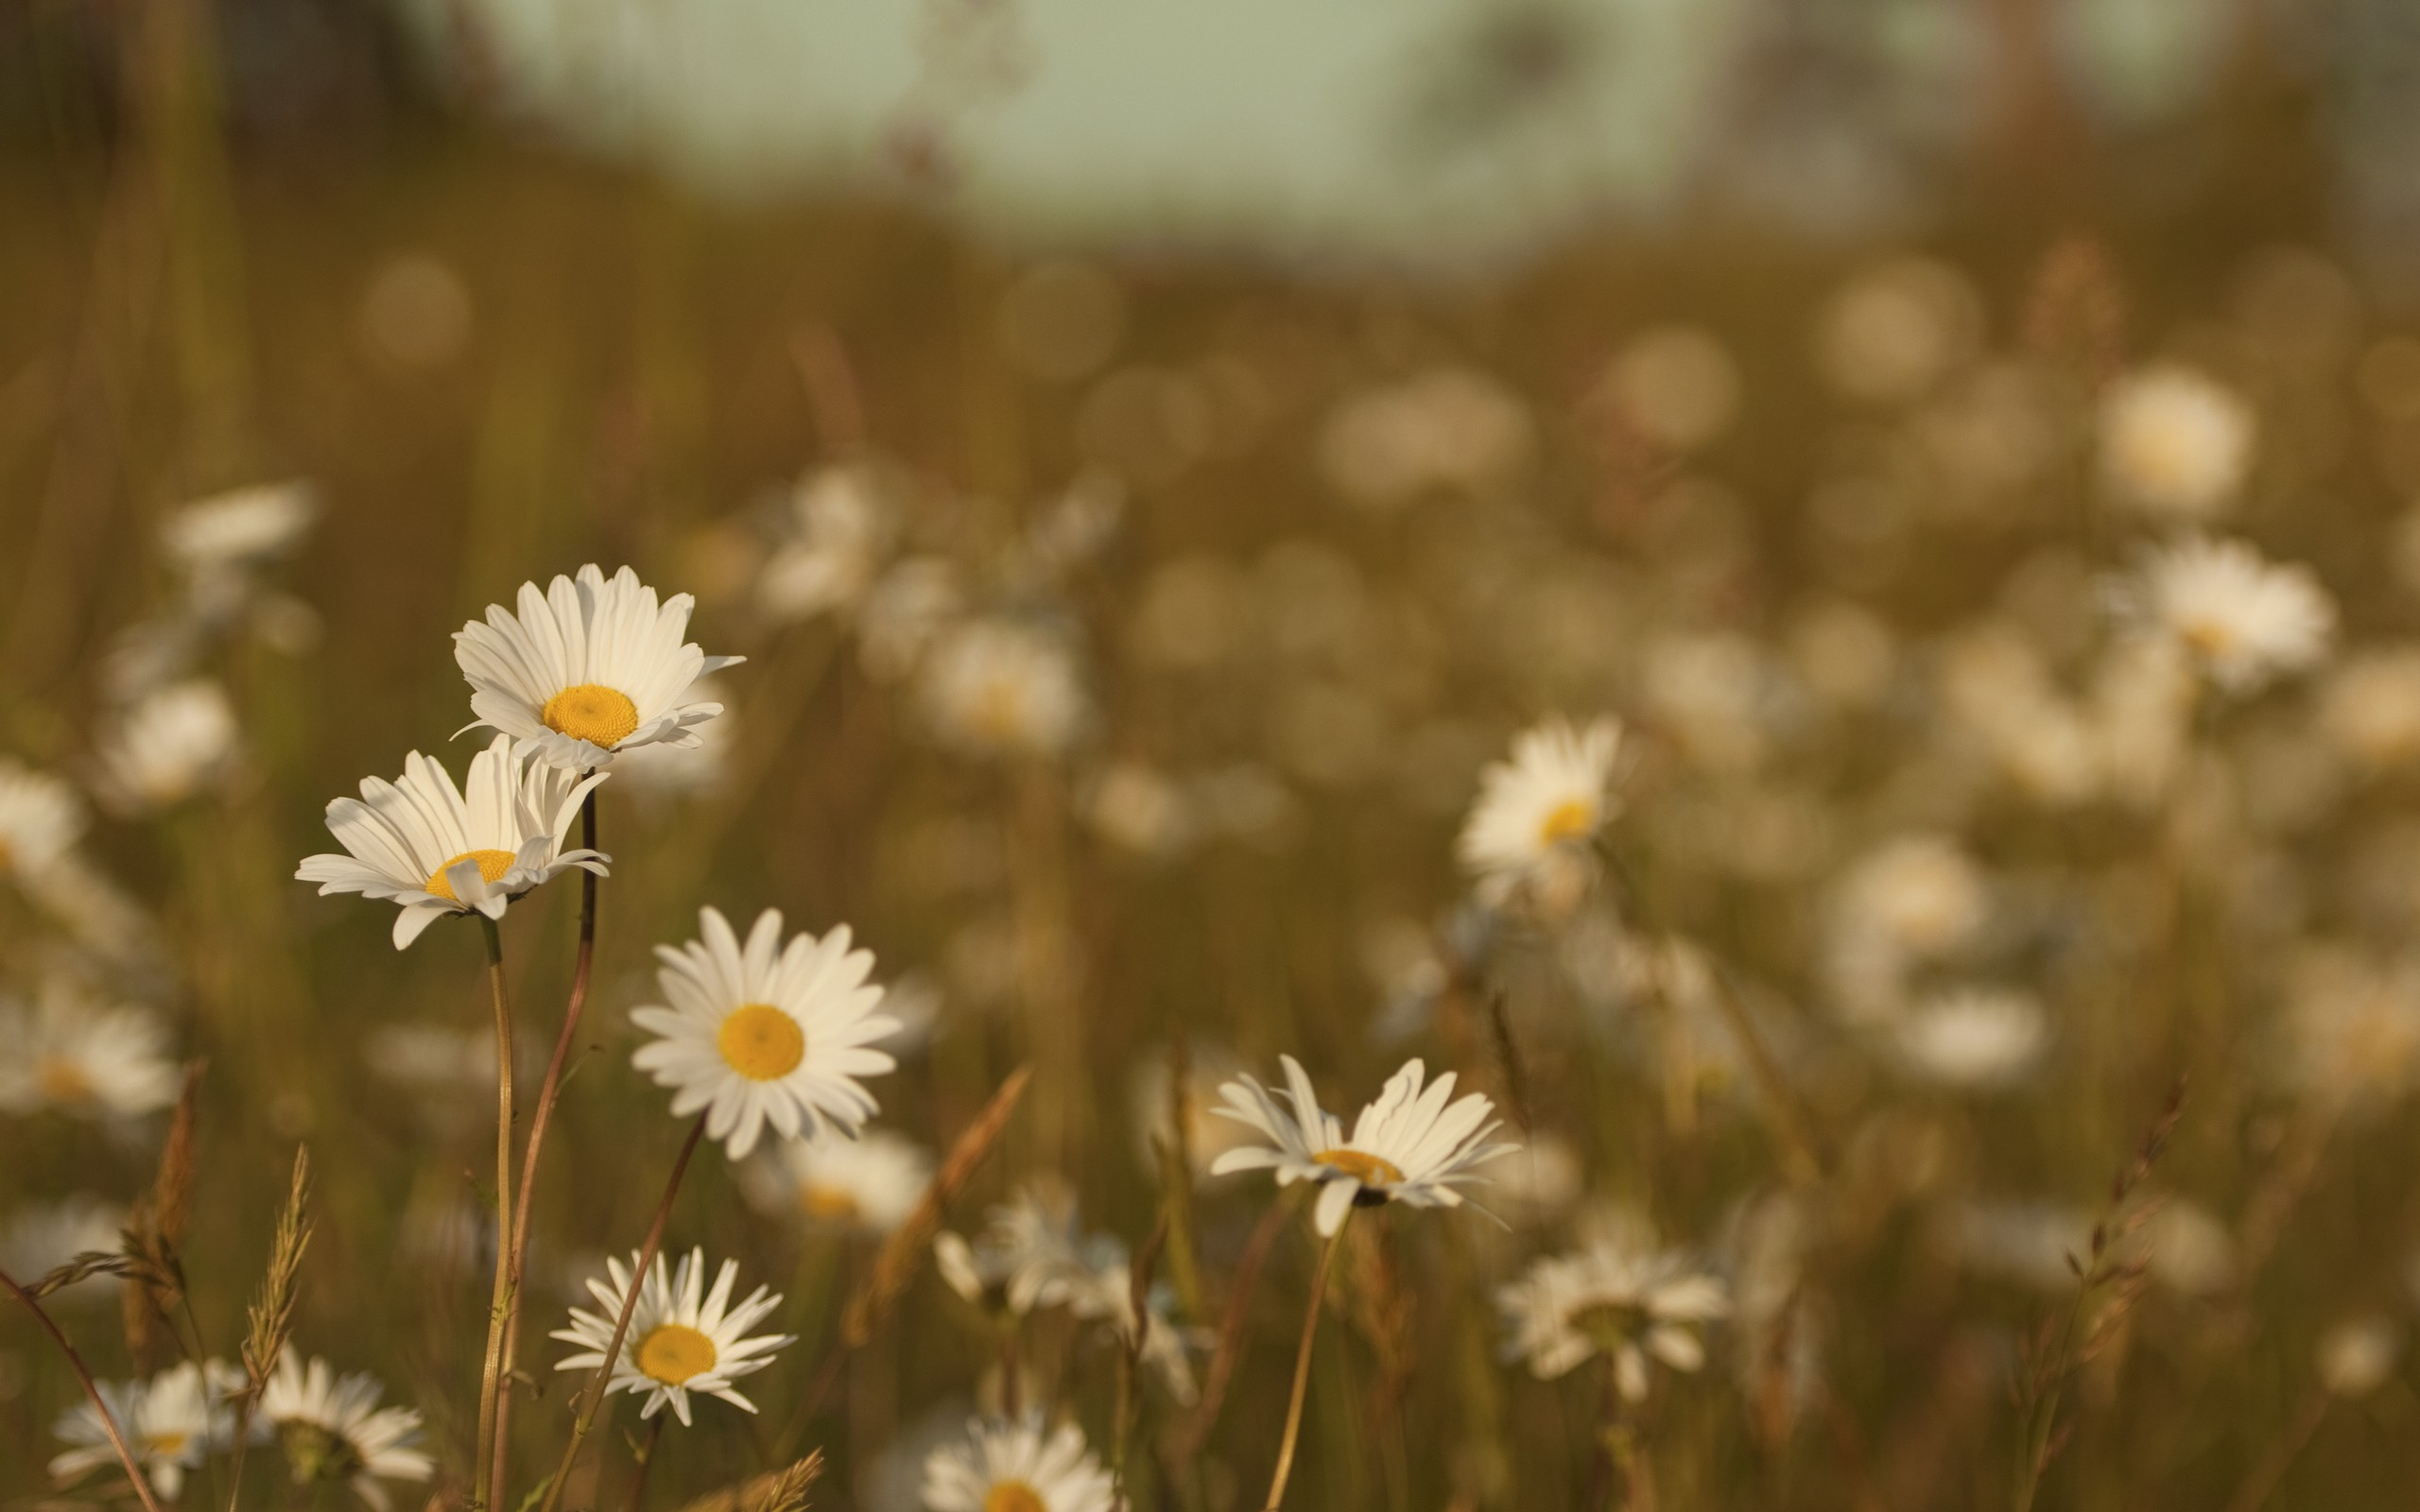 nature-flowers-daisies-on-a-blurred-background-07142051DF9D25-6449-F7CD-D09F-058B0C1BA8BD.jpg